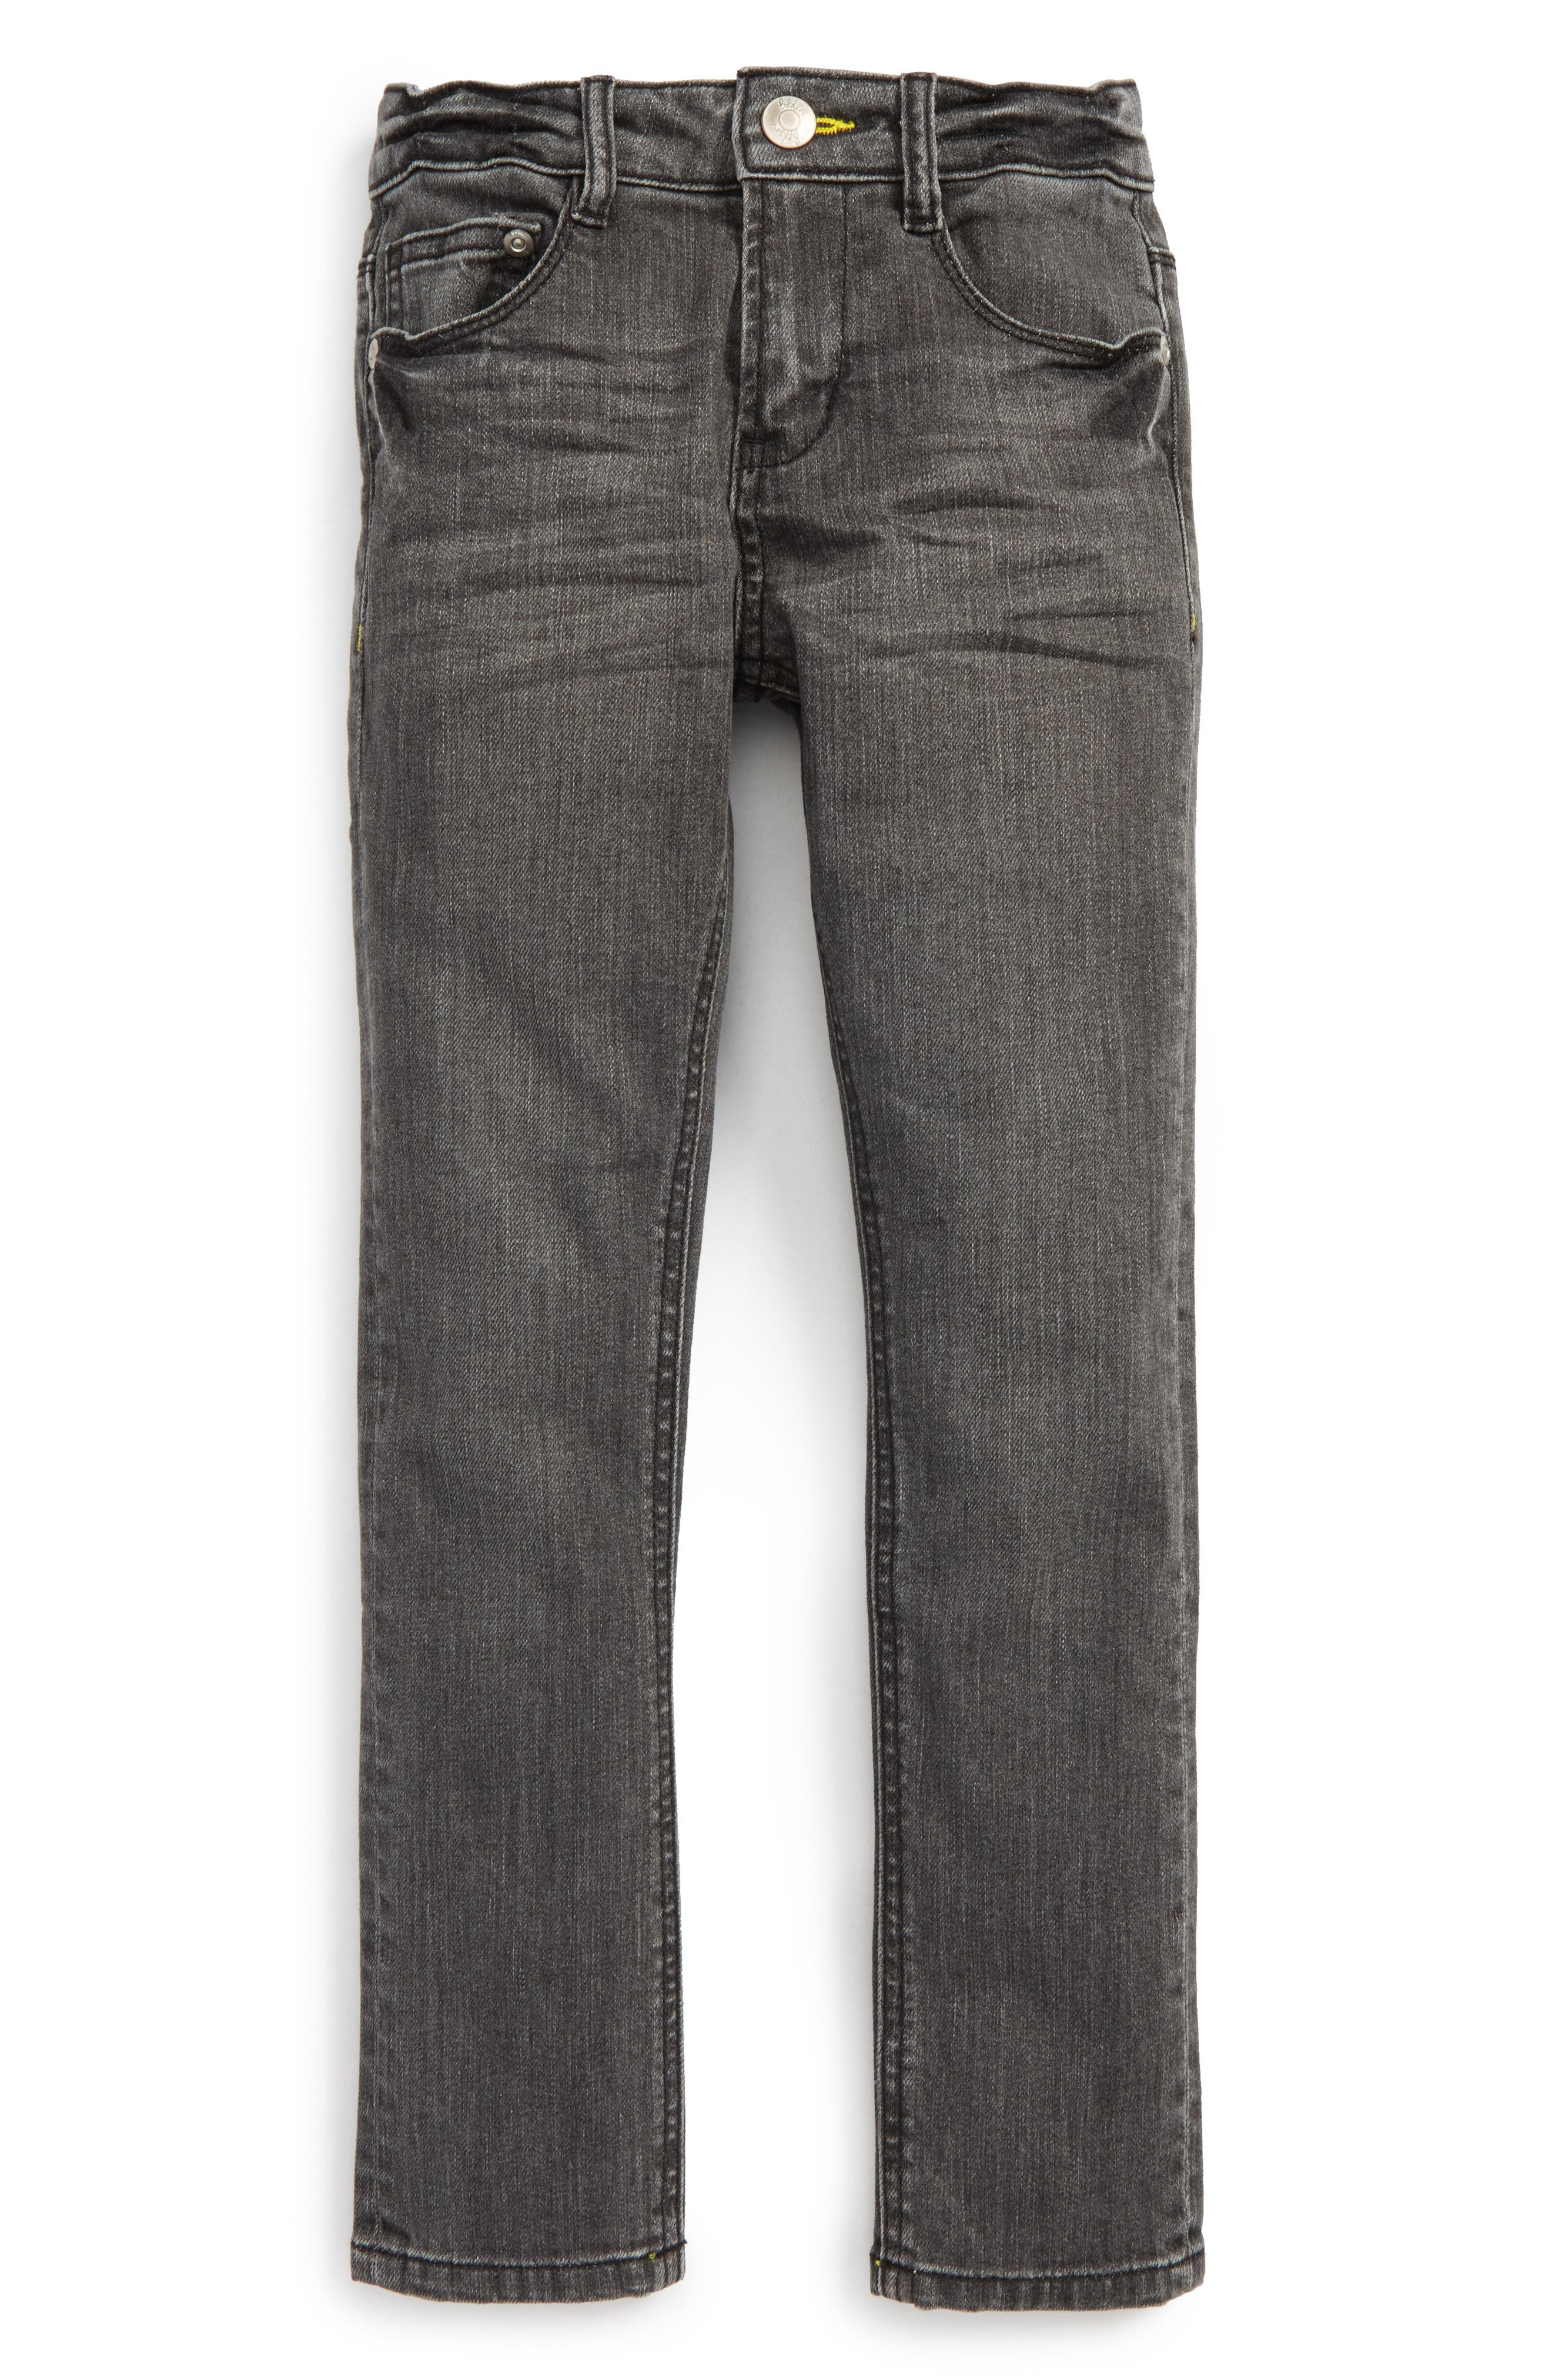 Mini Boden Skinny Jeans (Toddler Boys, Little Boys & Big Boys)